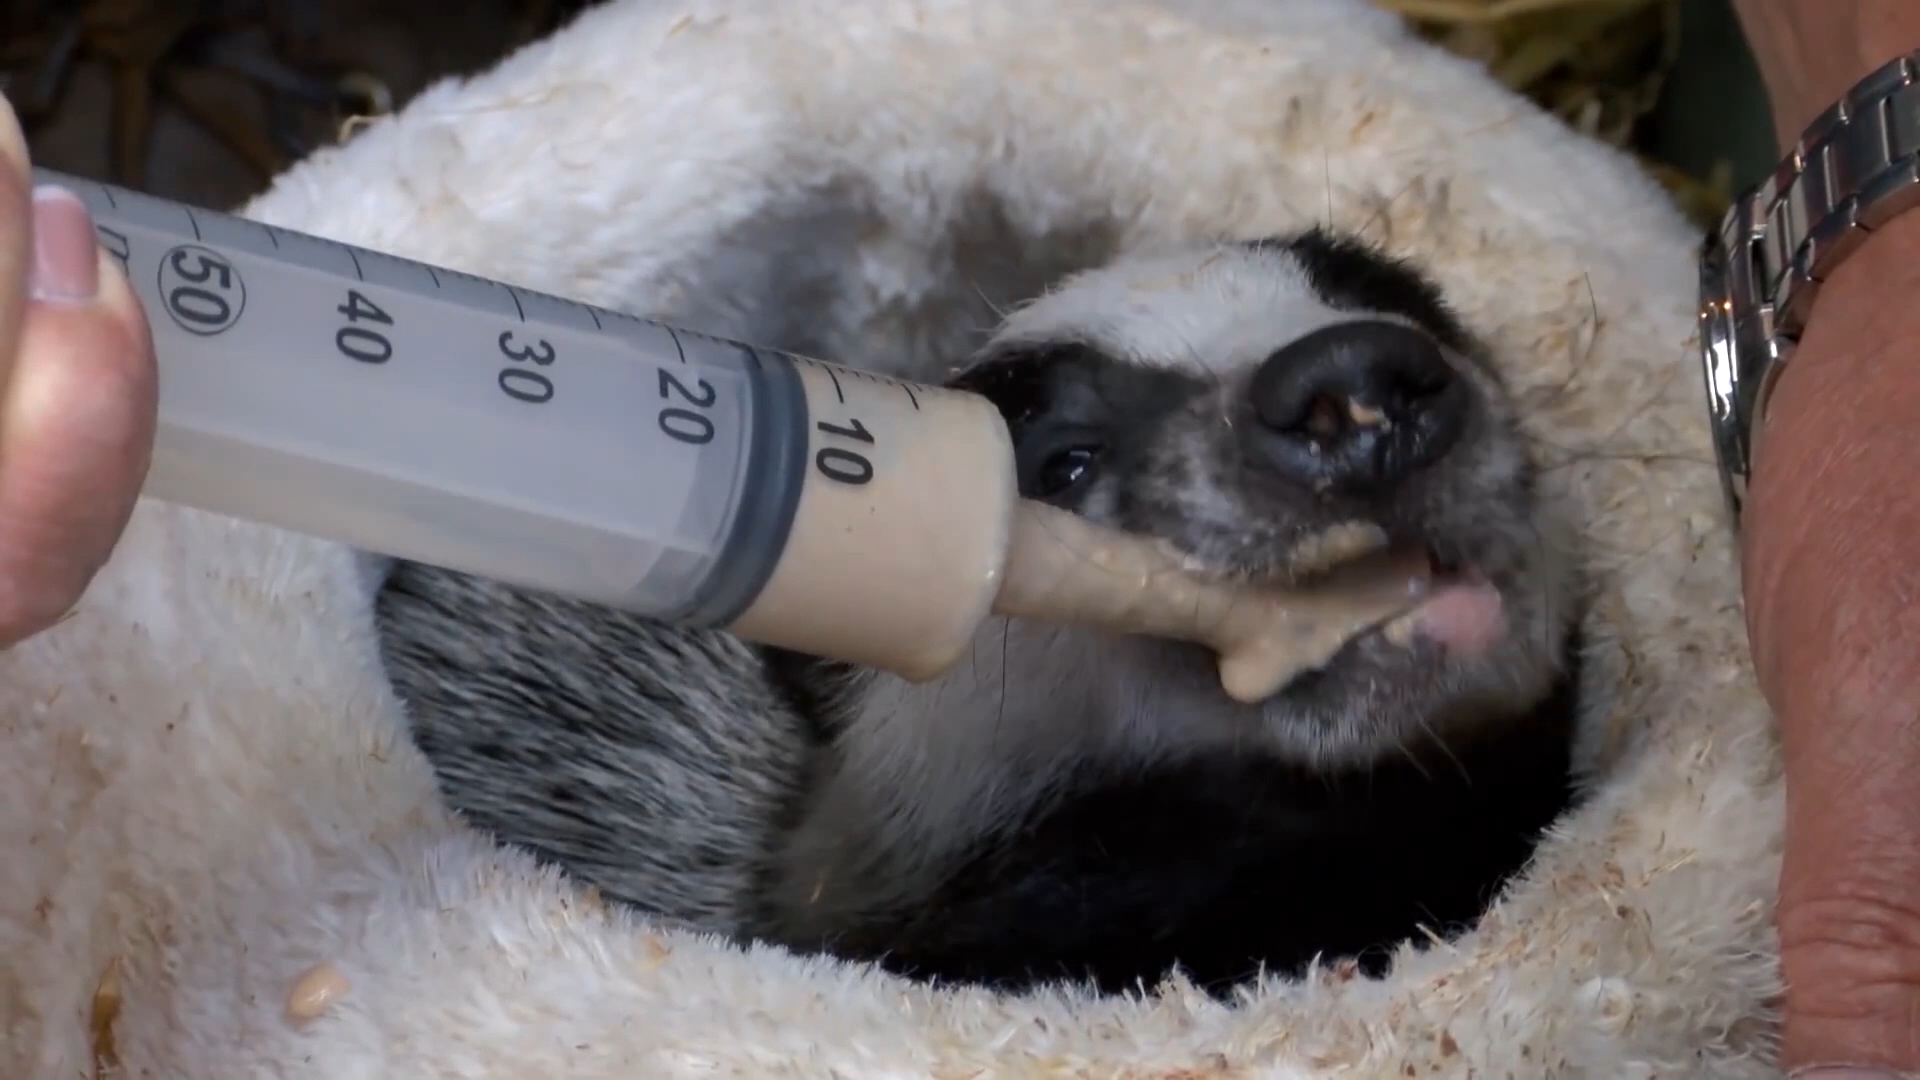 A badger is treated by the team at the Wildlife Aid Foundation in Leatherhead as seen on Channel 5's Wildlife SOS.